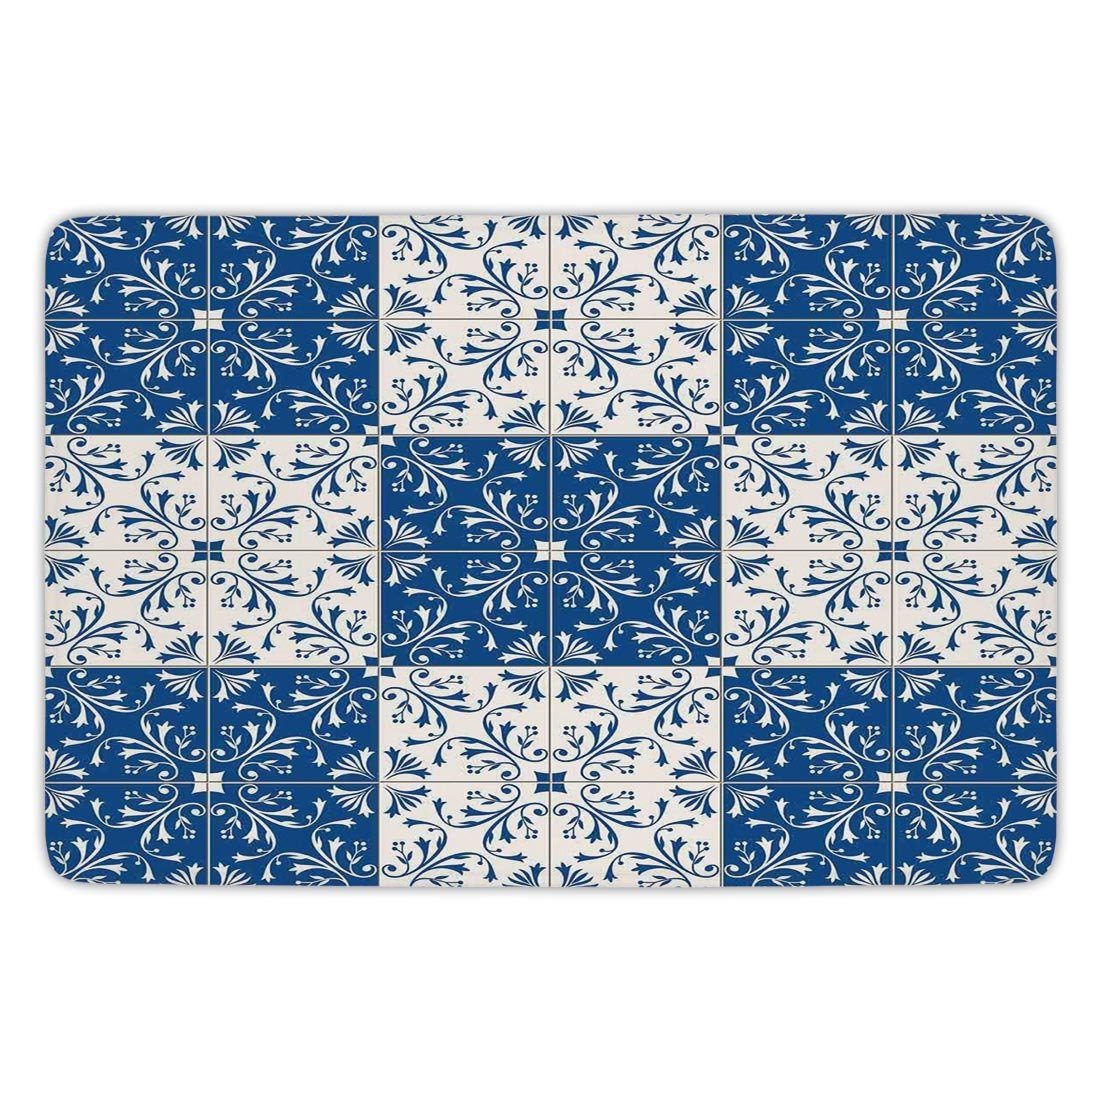 Bathroom Bath Rug Kitchen Floor Mat Carpet,Moroccan,Turkish Portuguese Style Mosaic Ceramic Patterns Country Style Vintage Image,Navy Blue White,Flannel Microfiber Non-slip Soft Absorbent